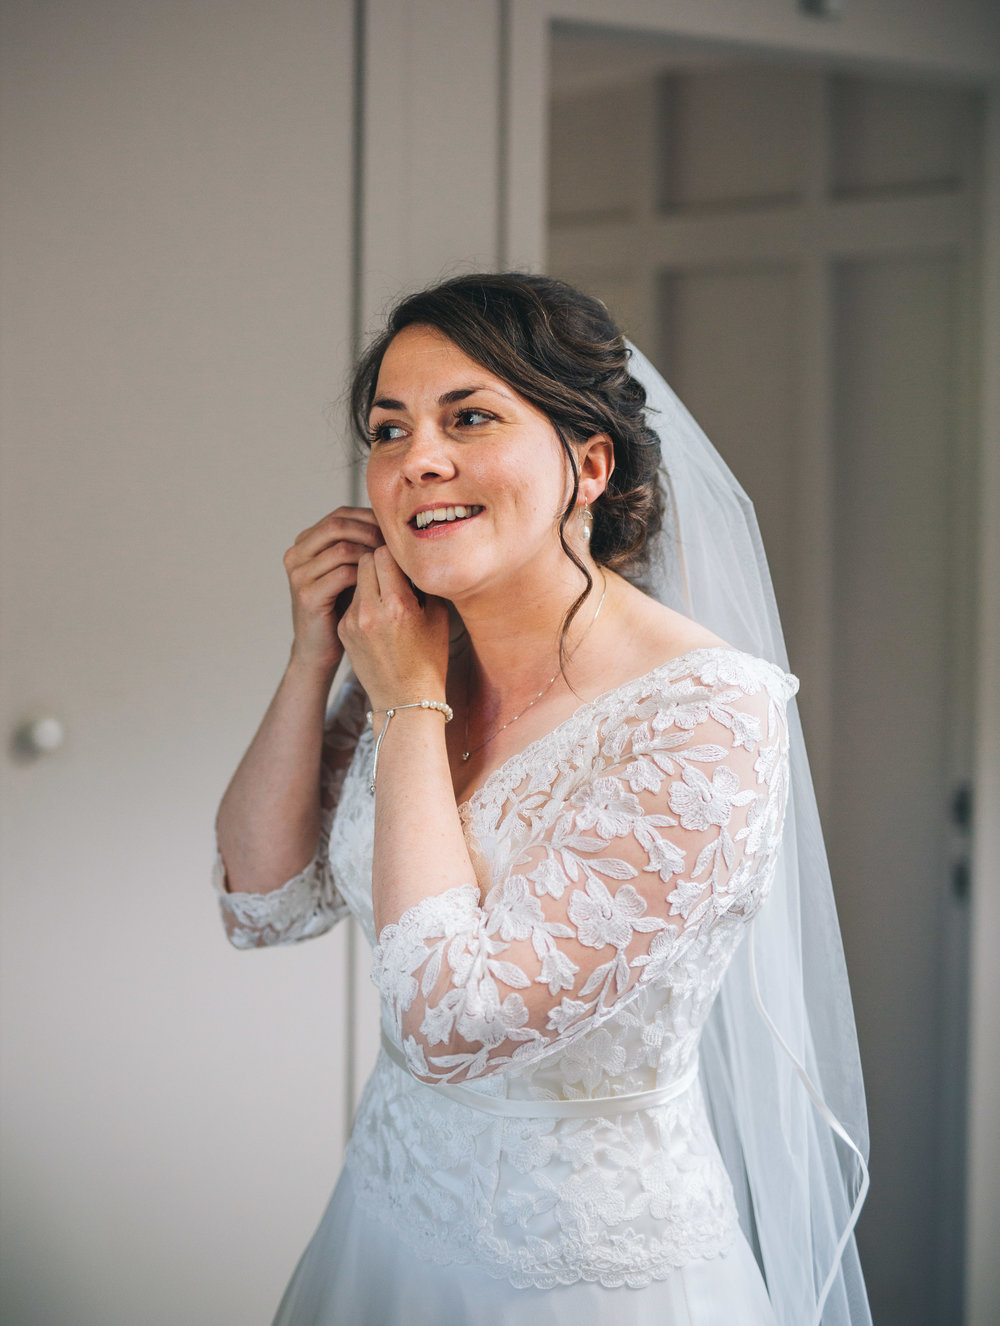 The lovely bride getting ready, Ribble Valley Village Hall Wedding.